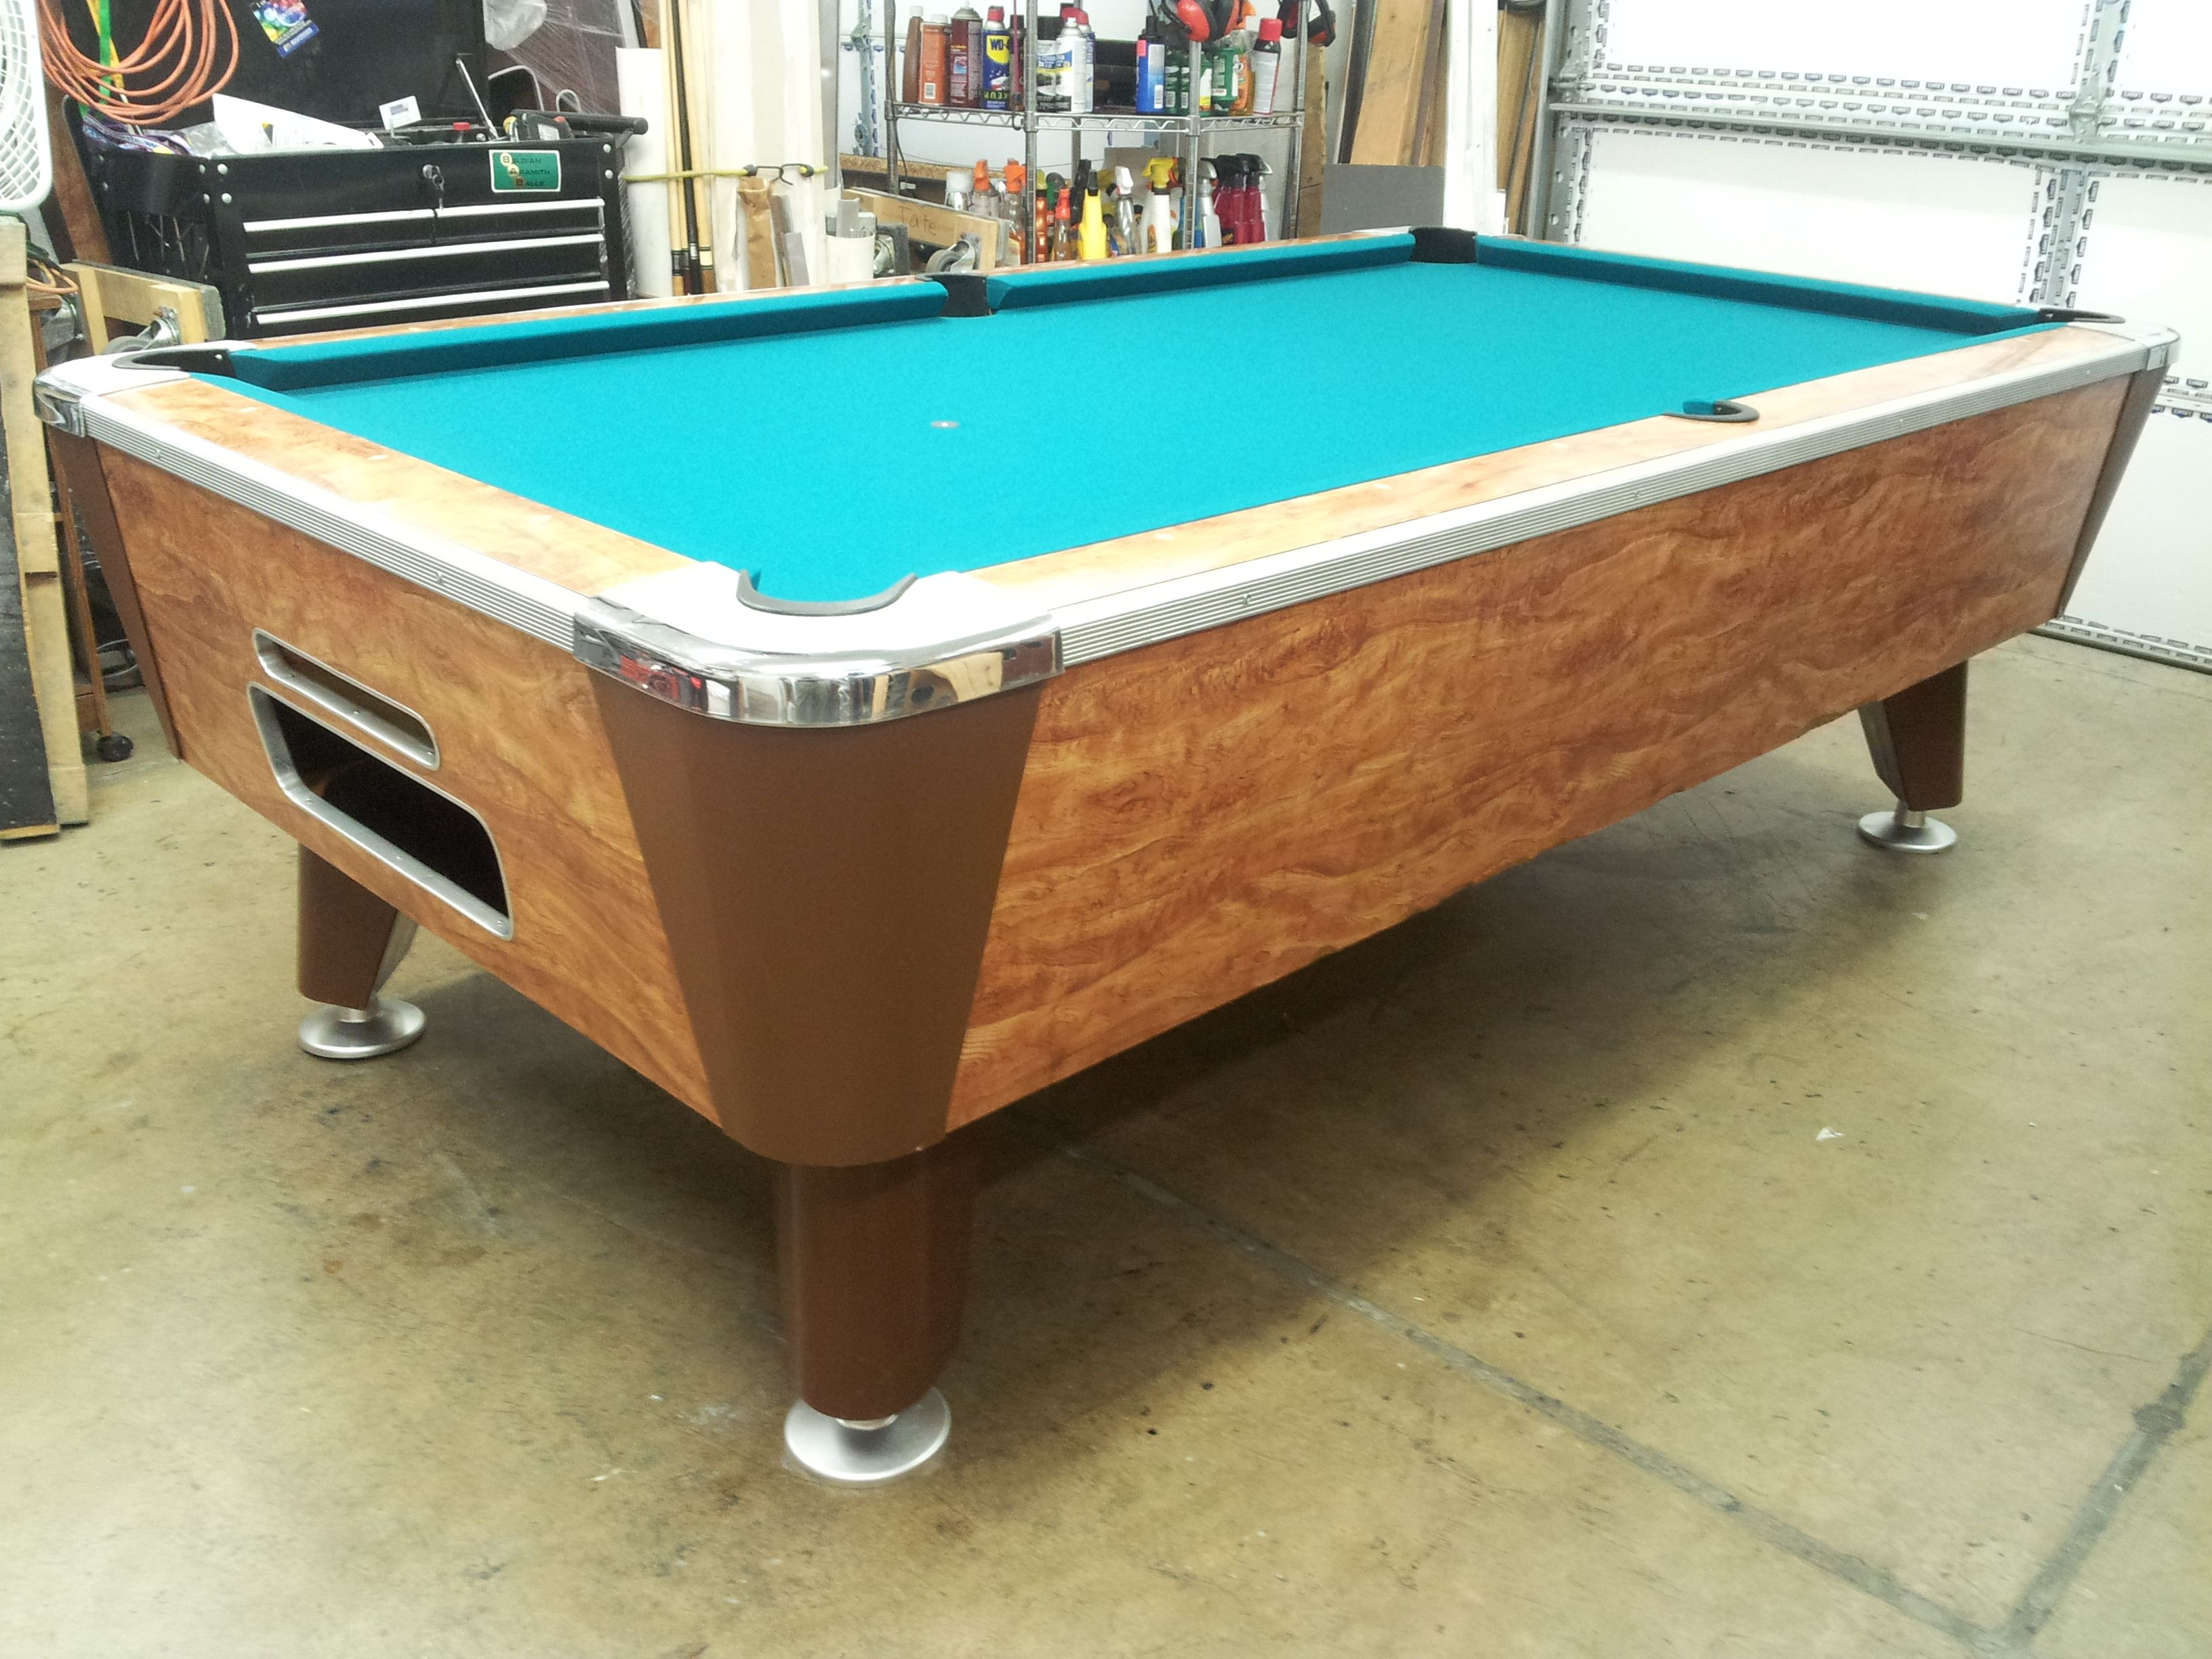 Comfortable Table Valley Coin Operated Table Bowling Alley Pinterest - Valley coin operated pool table